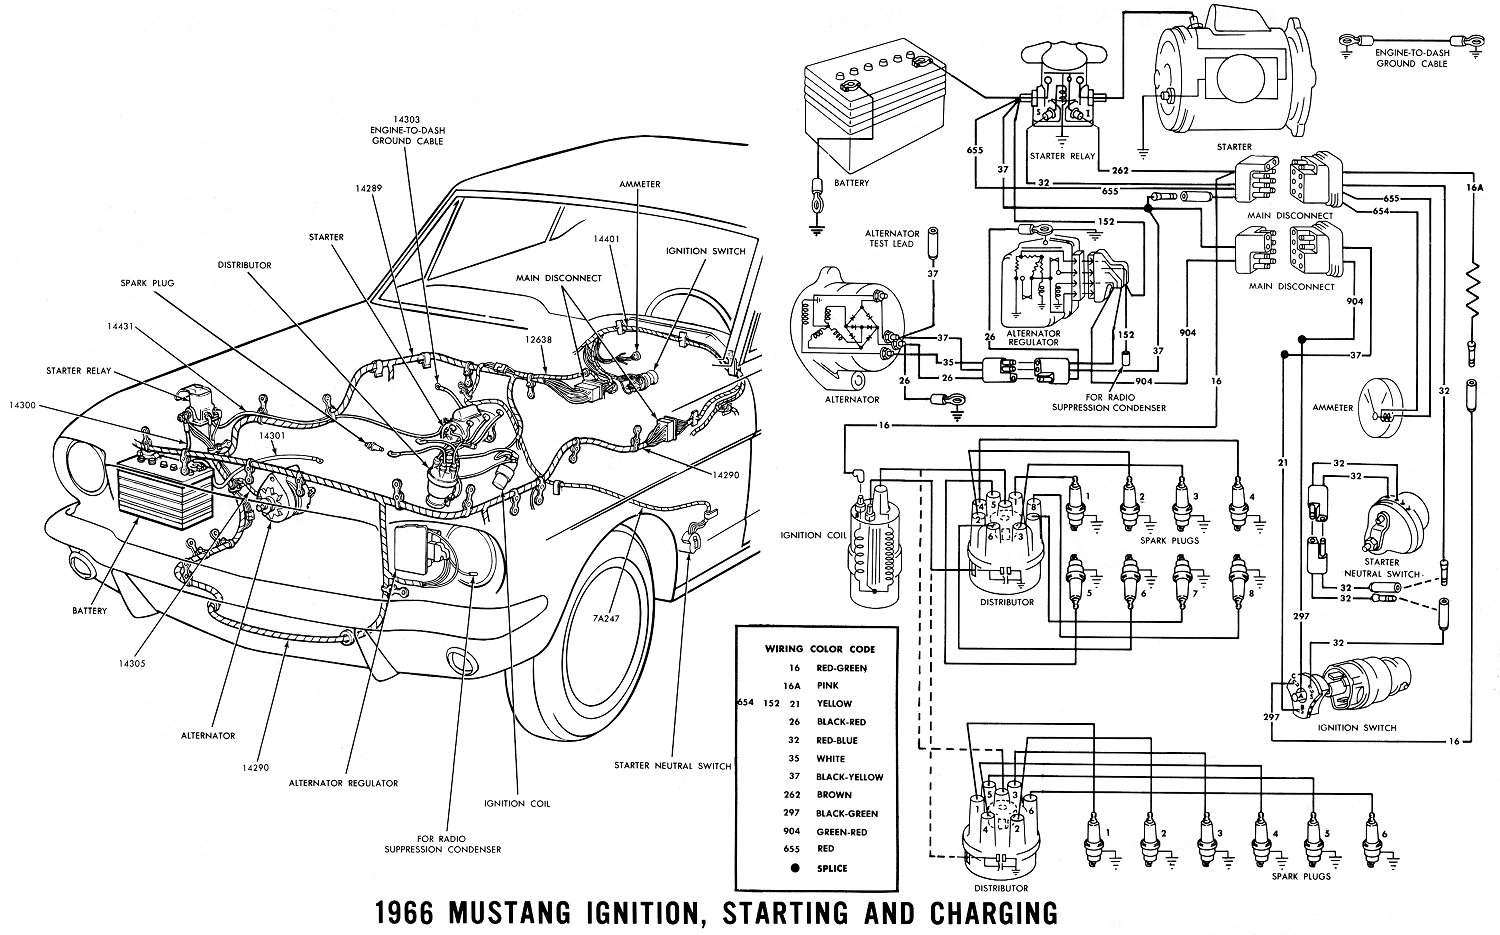 66ignit 1966 mustang wiring diagrams average joe restoration 1966 mustang wiring diagrams at nearapp.co